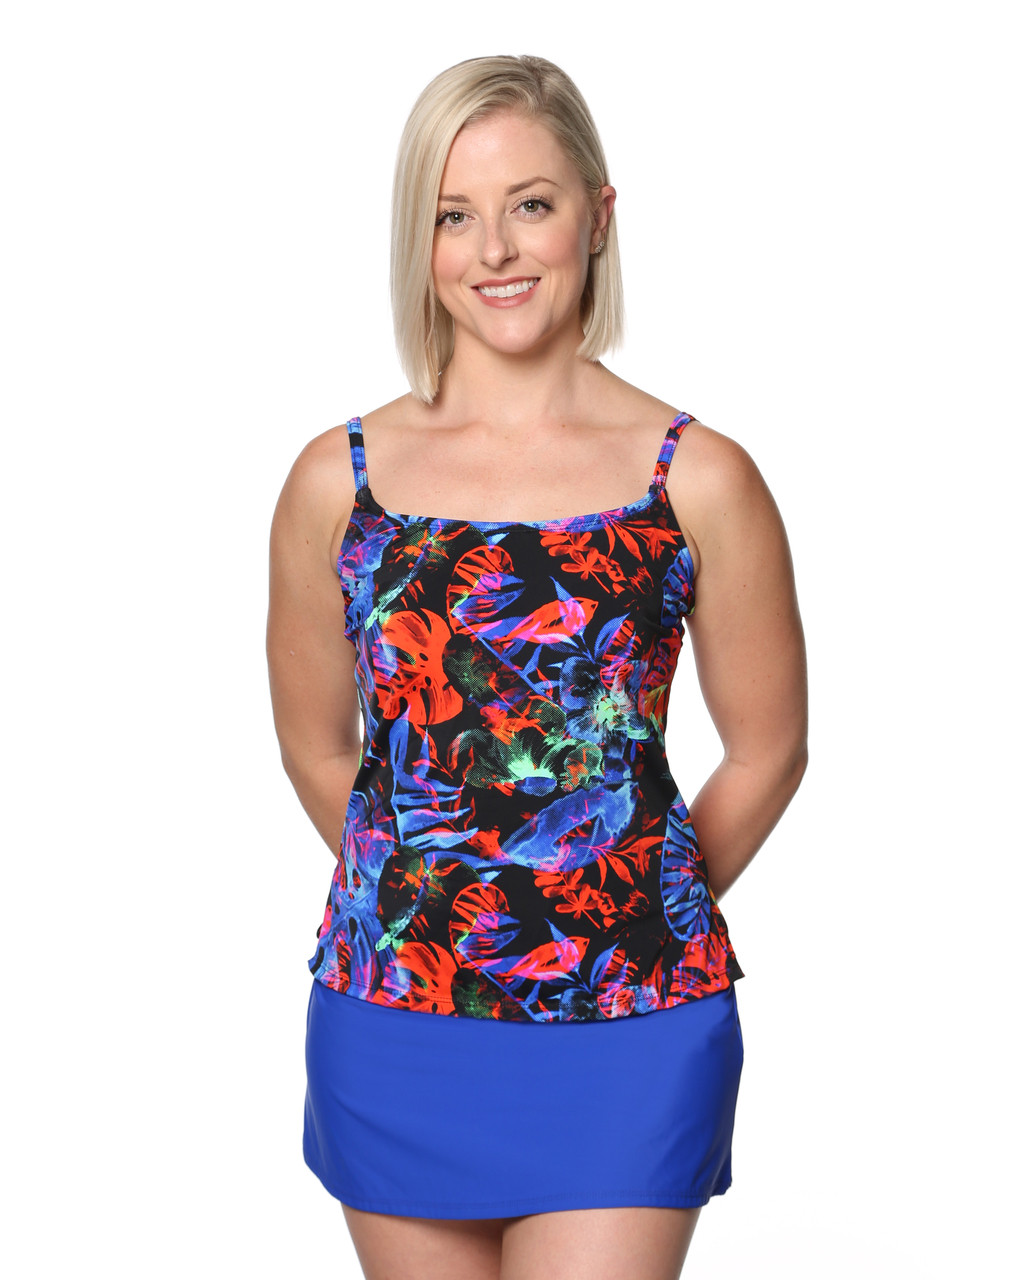 45bc523e078 2019 T.H.E. Collection 28-60 Mastectomy Swim Tank Top Only ...